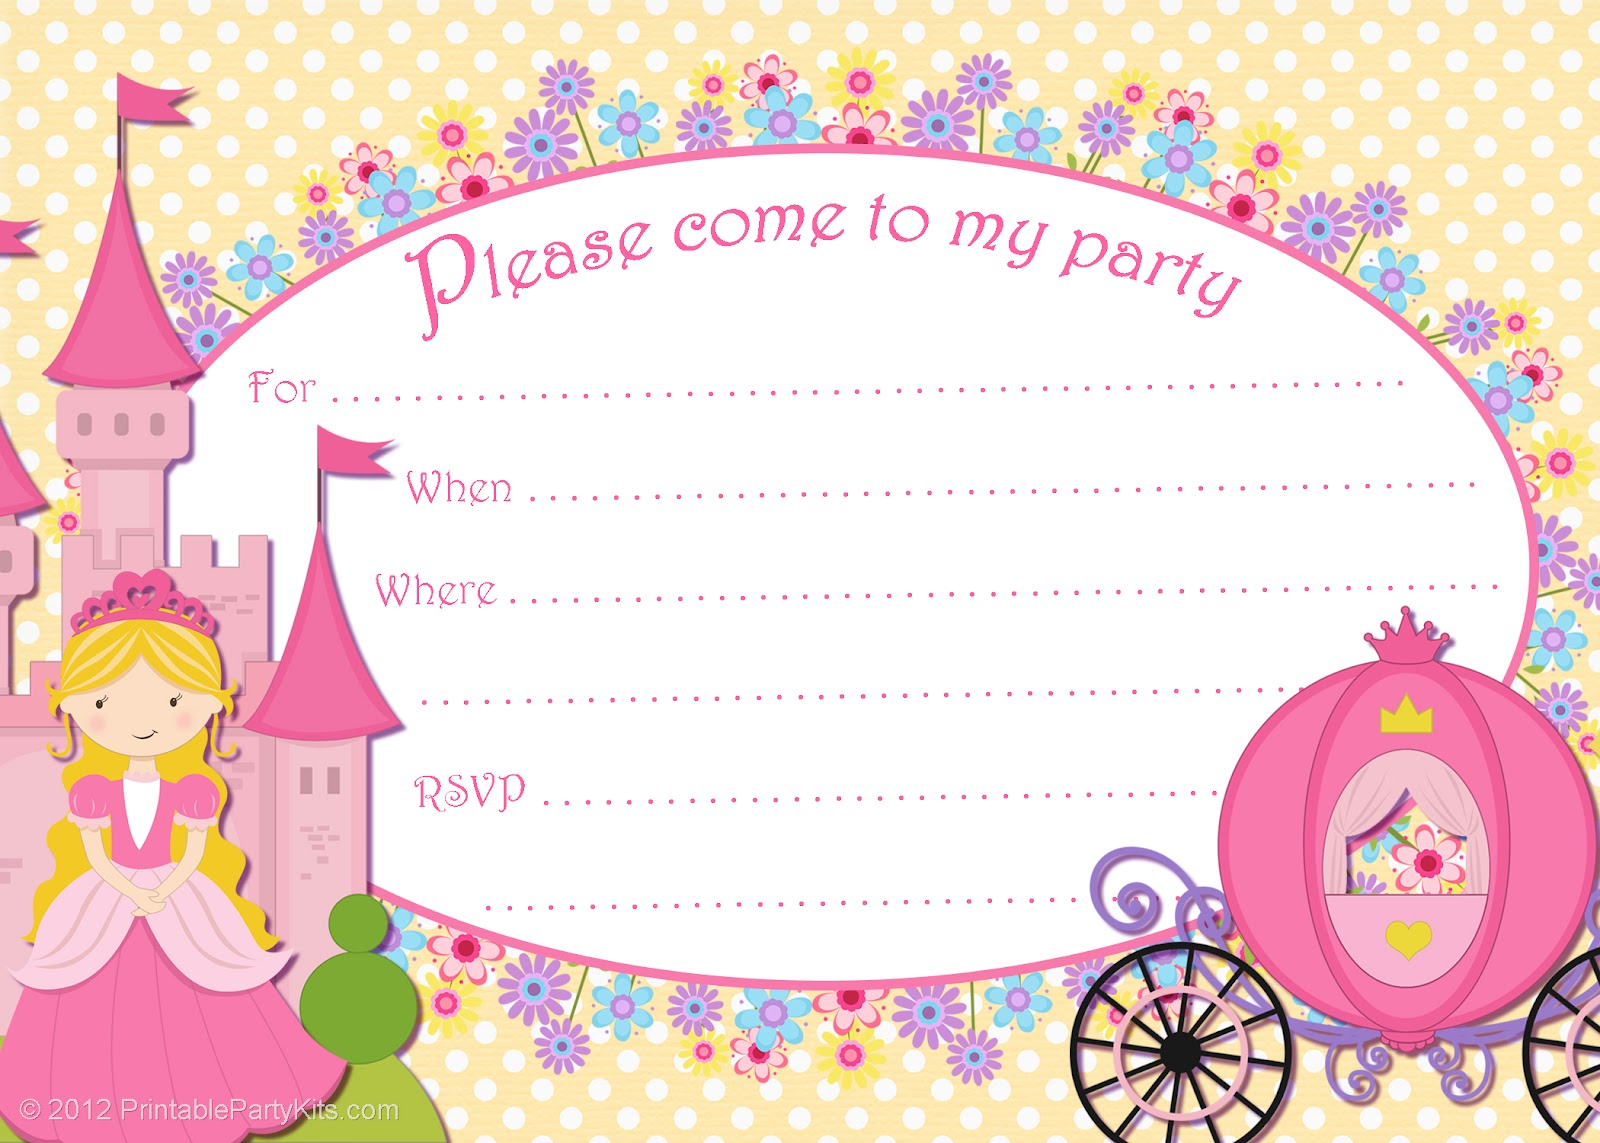 Free Printable Party Invitations: Free Printable Cinderella Party ...